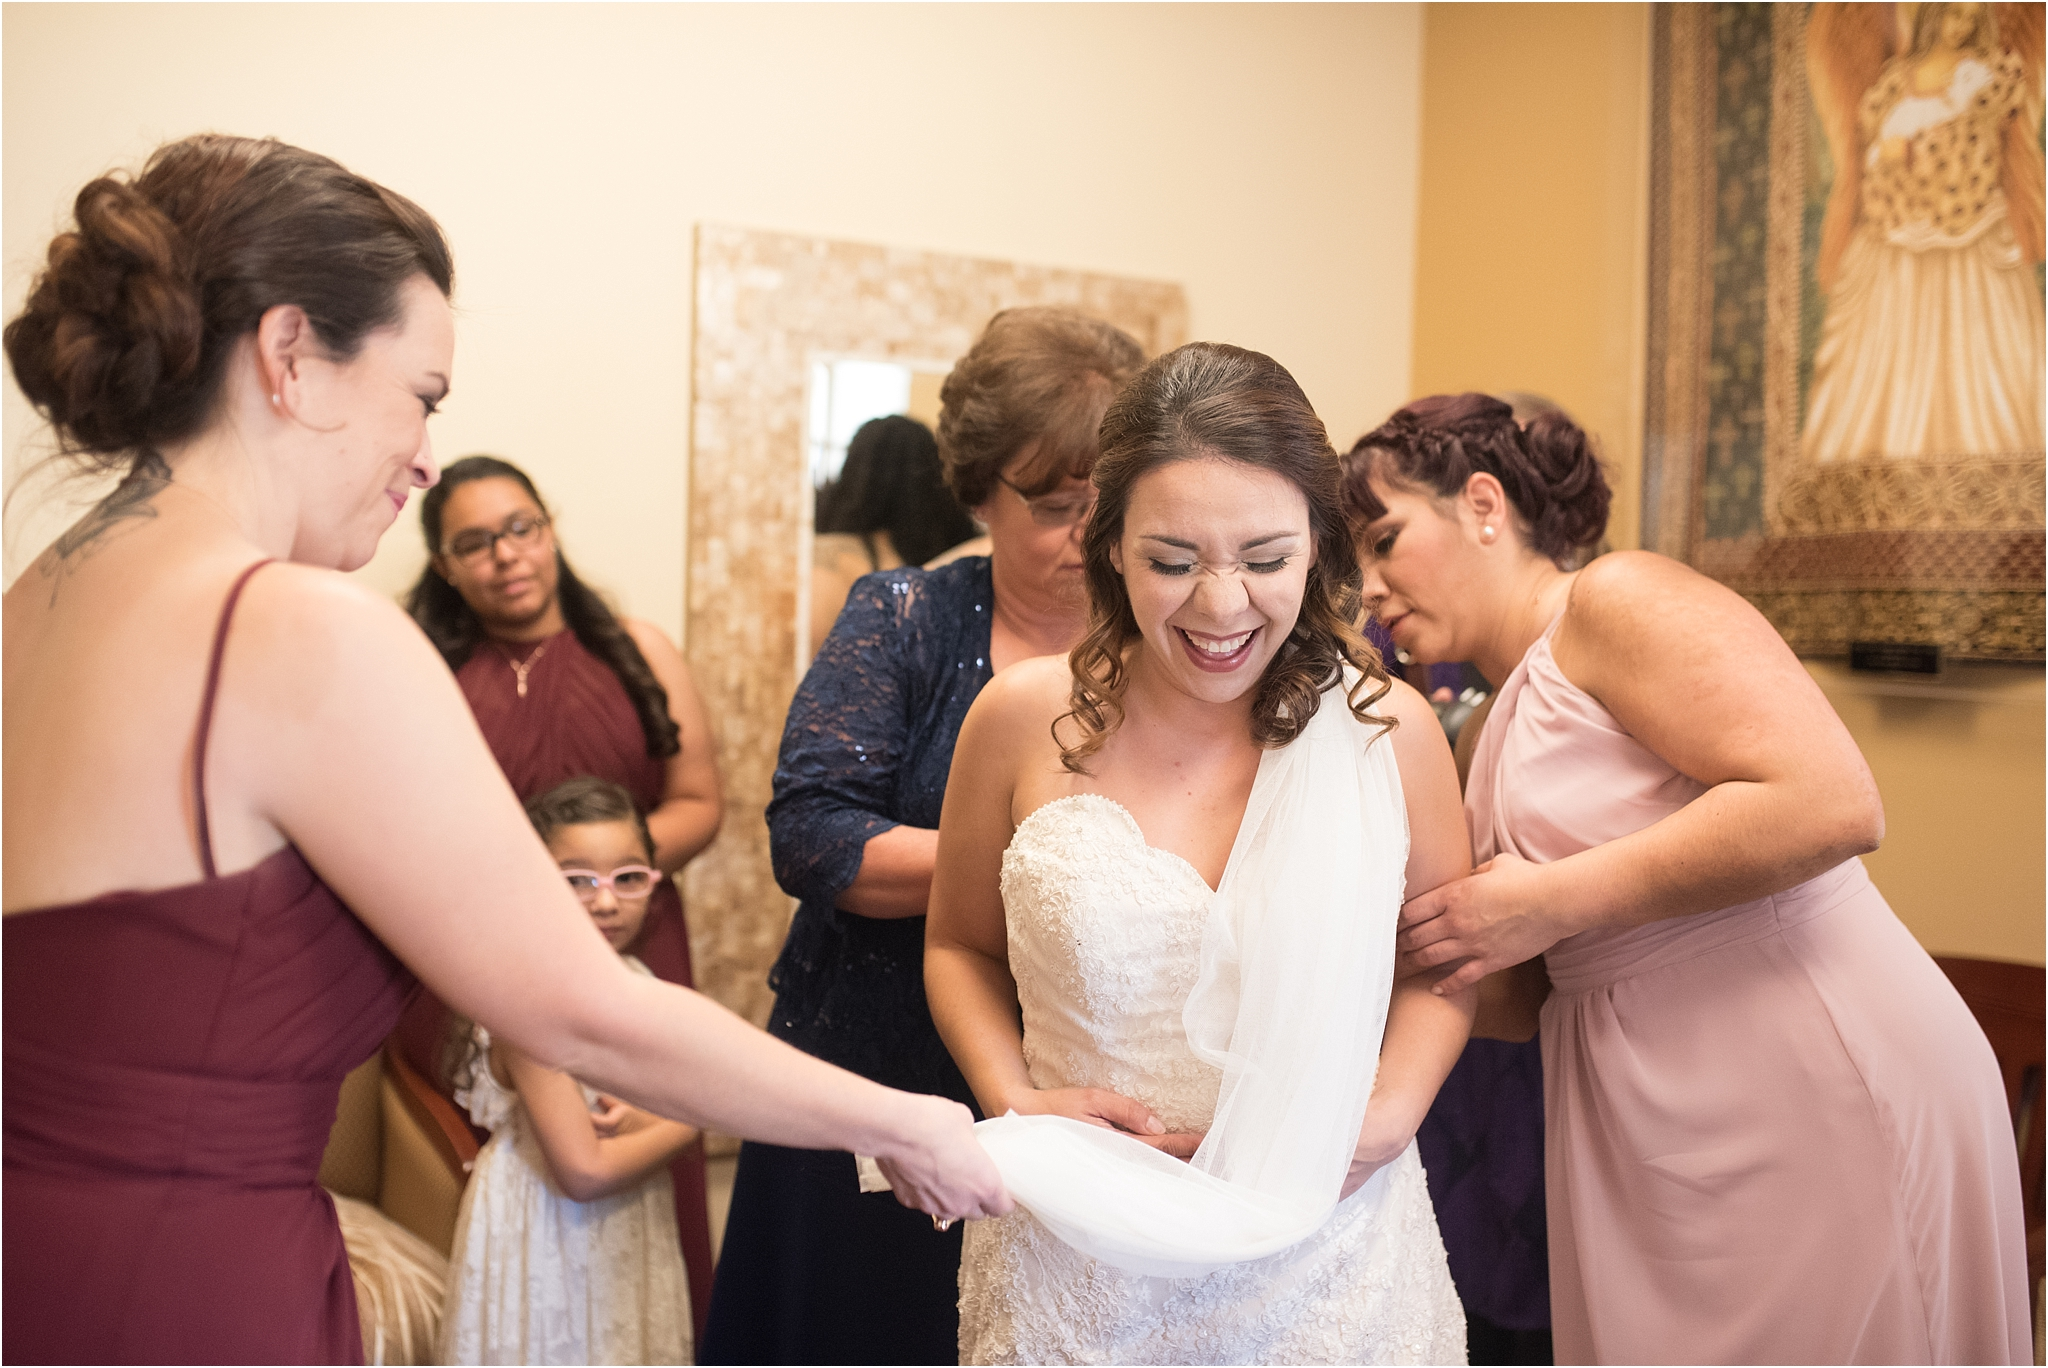 kayla kitts photography - albuquerque wedding photographer - new mexico wedding photographer - desination wedding photographer - cabo wedding photographer_0042.jpg